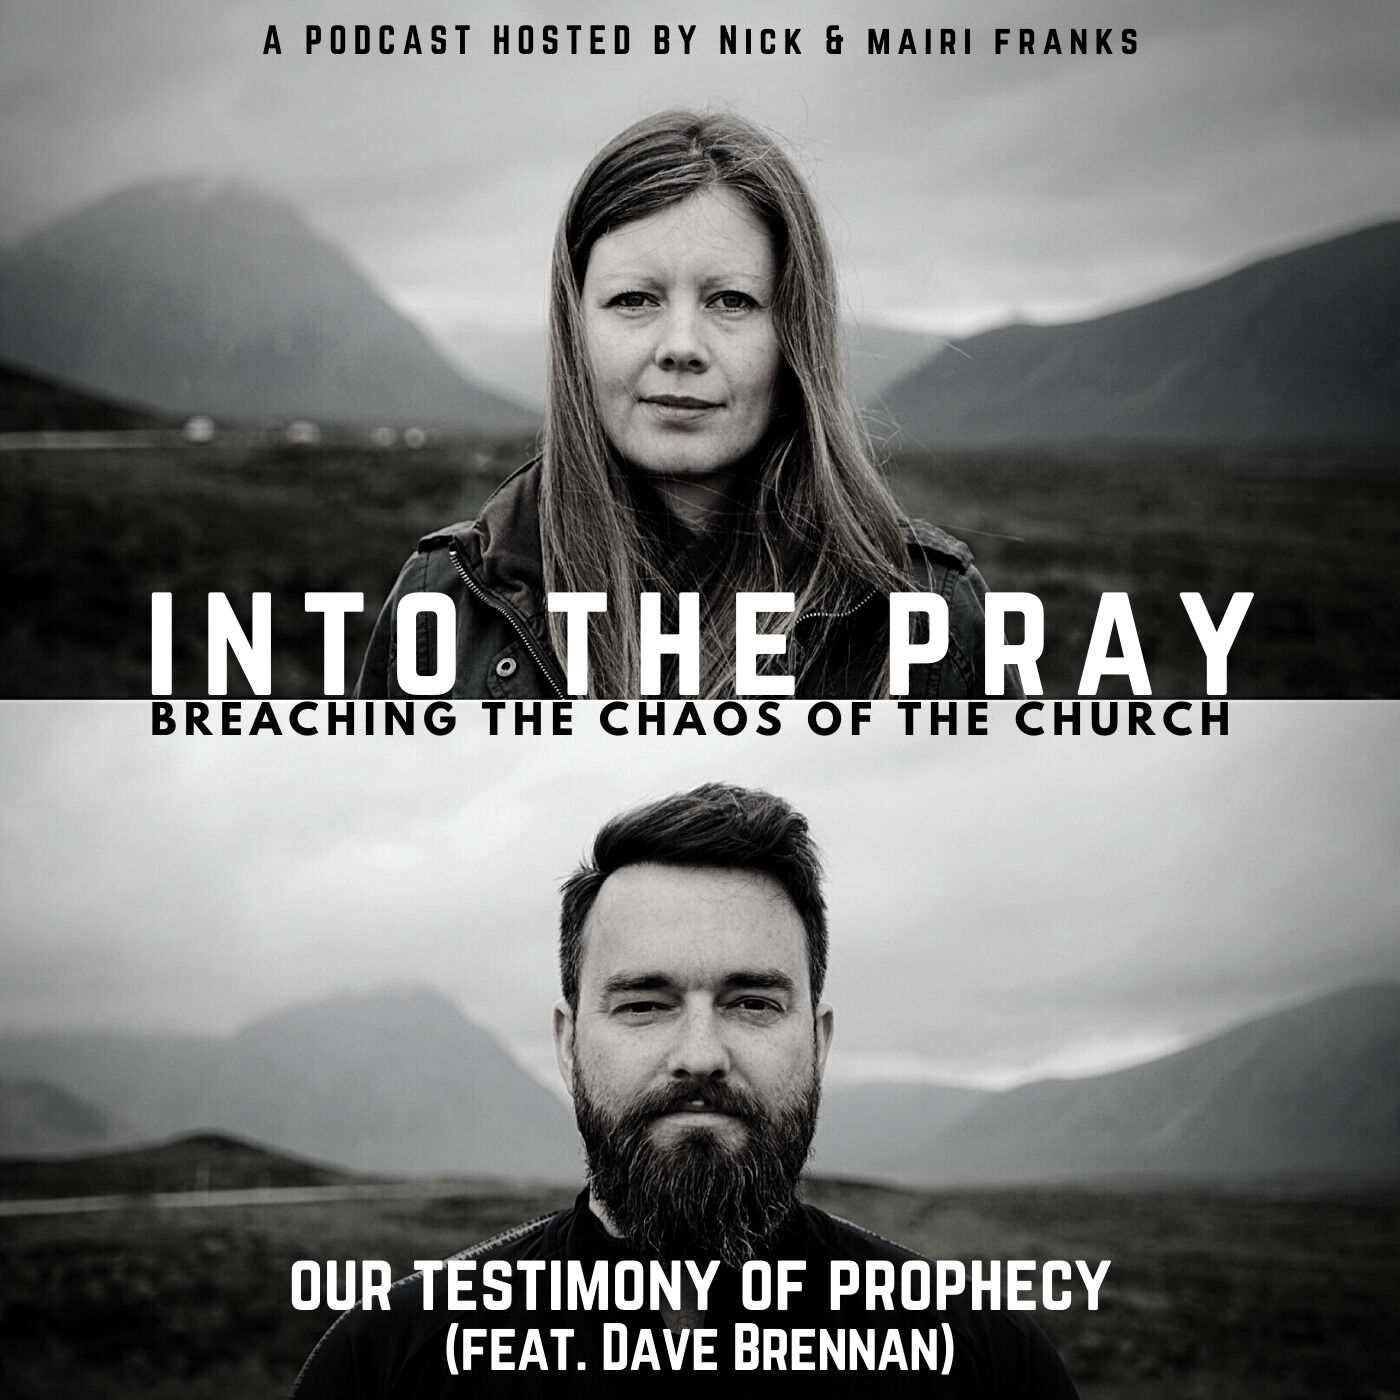 Our Testimony of Prophecy (feat. Dave Brennan)